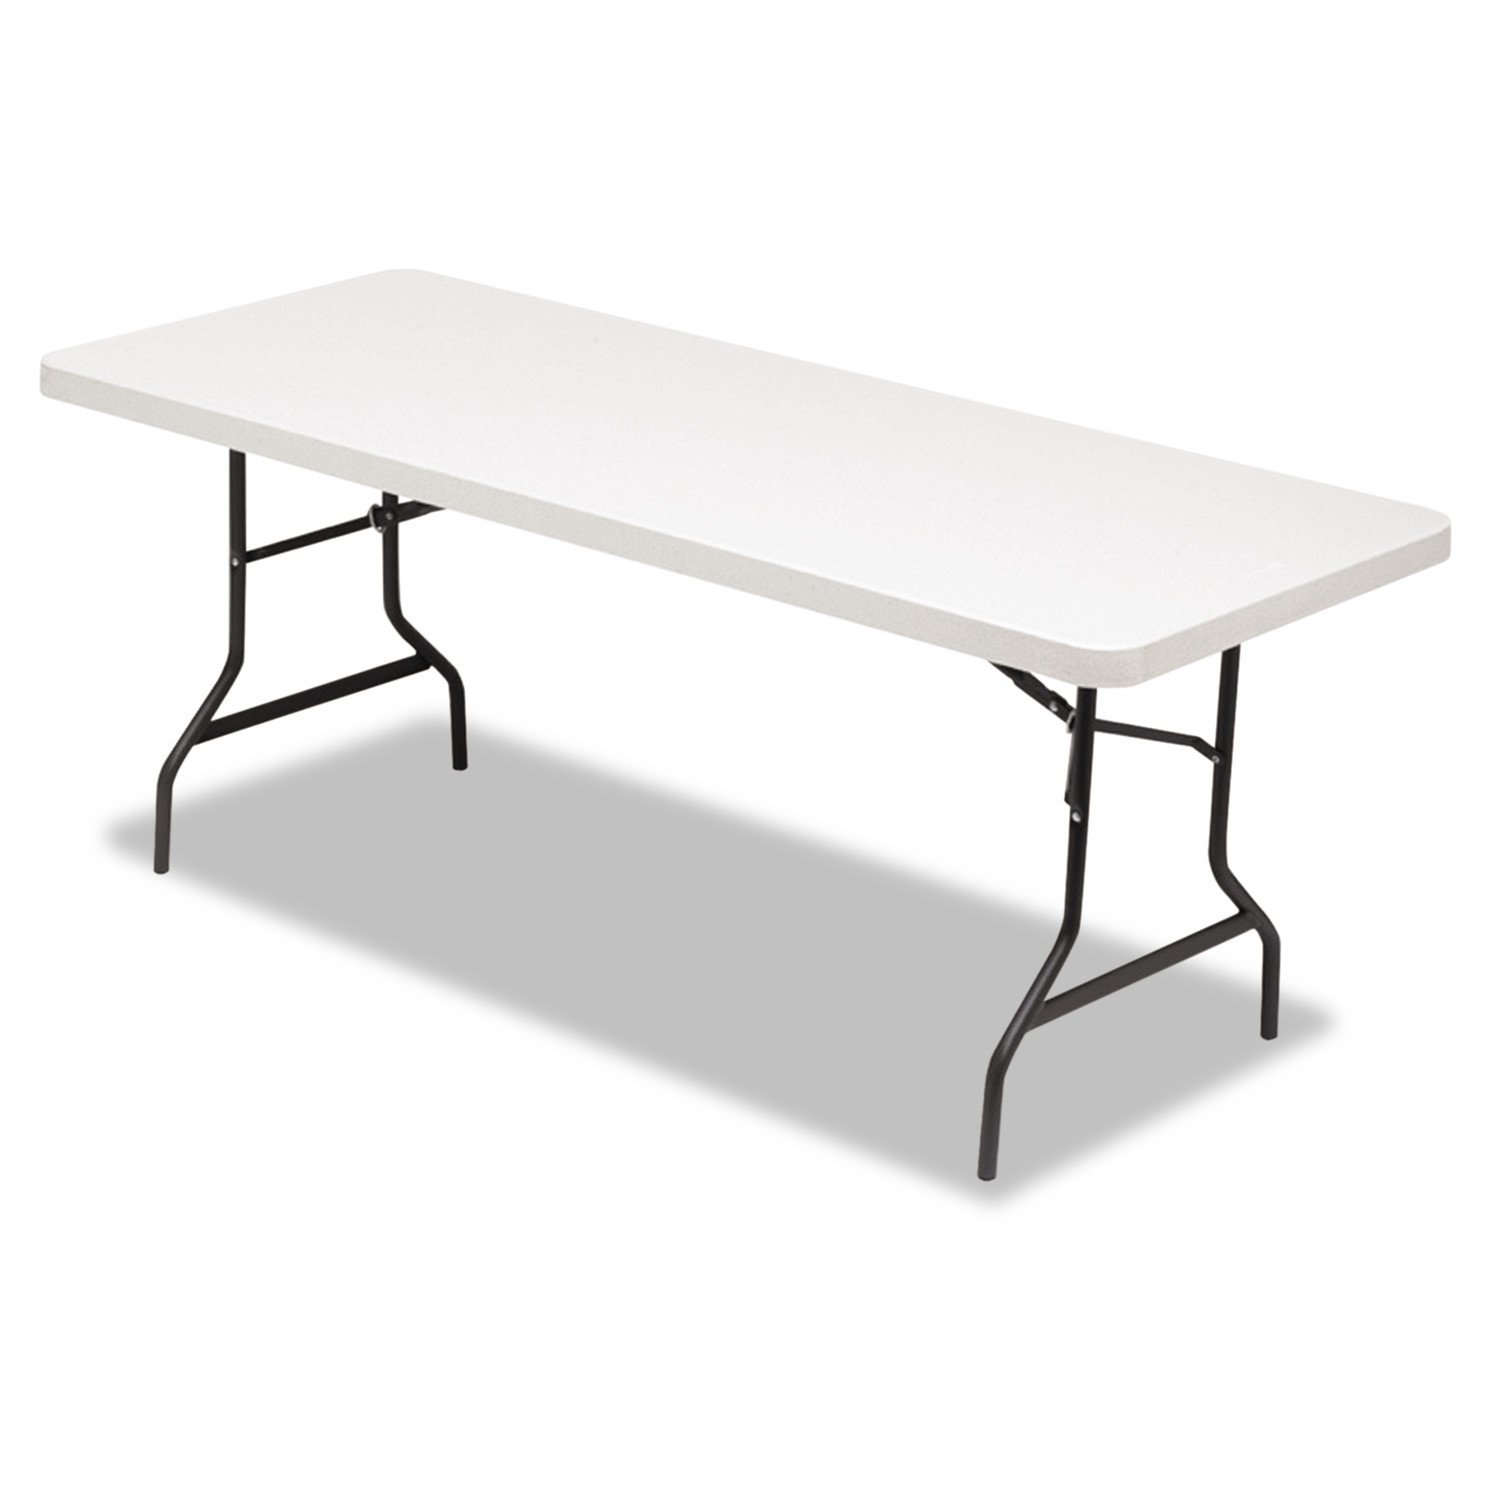 Alera Resin Rectangular Folding Table, Square Edge, 72w x 30d x 29h, Platinum by ALERA